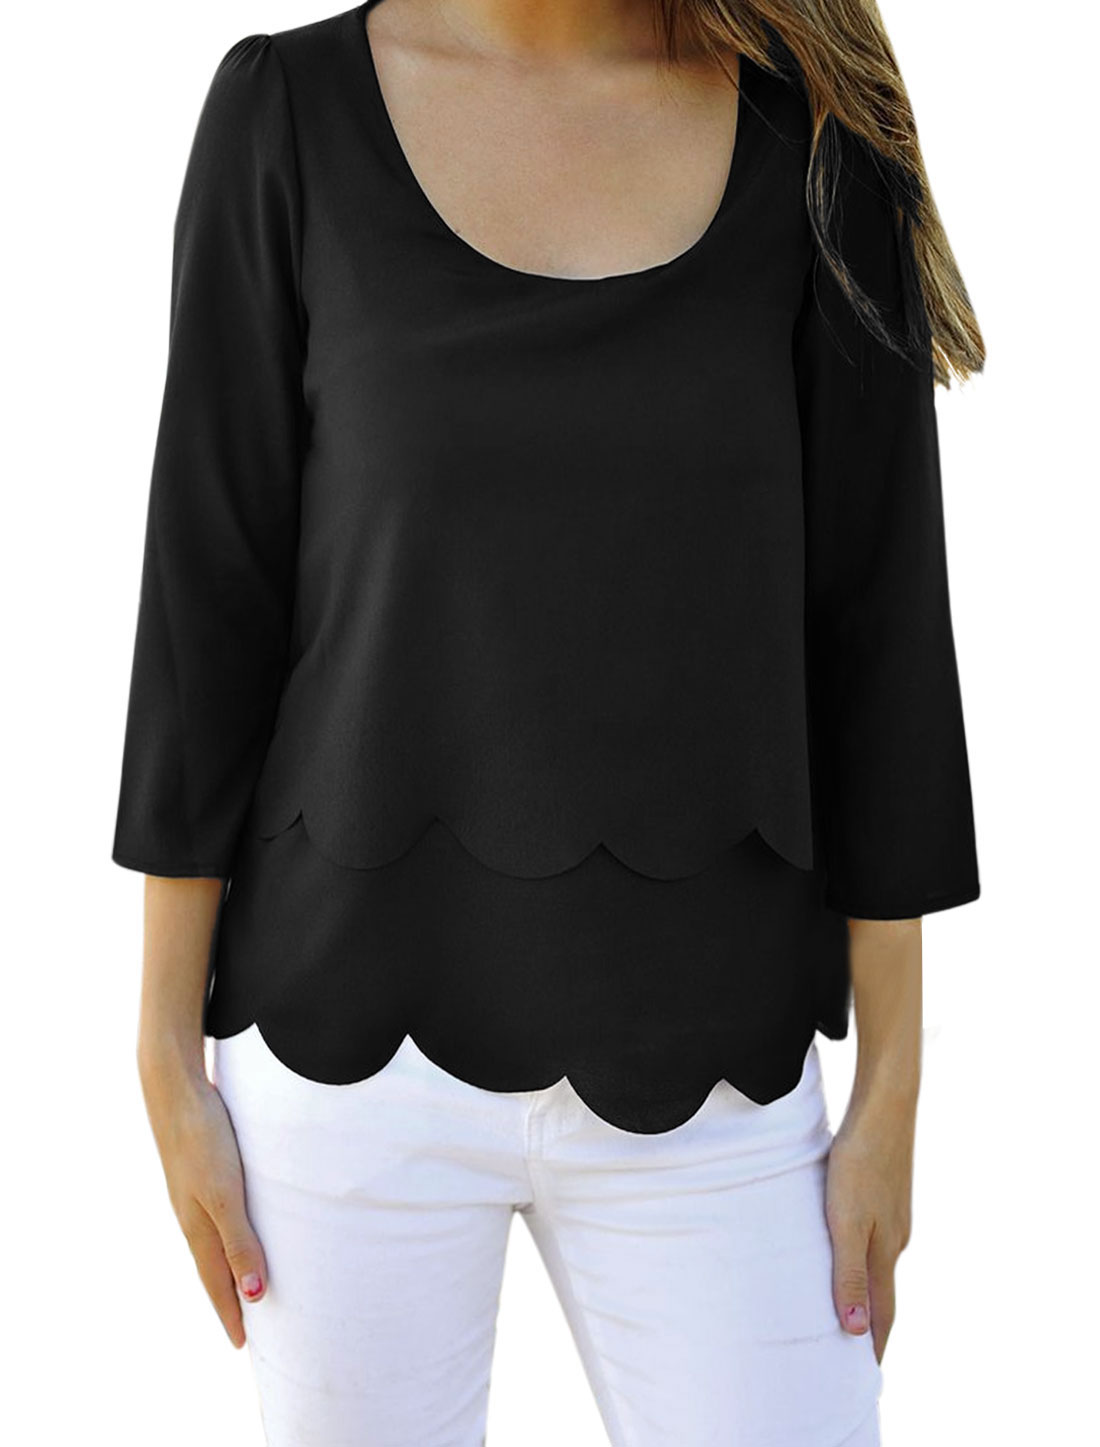 Woman Scoop Neck 3/4 Sleeve Open Back Casual Top Black M